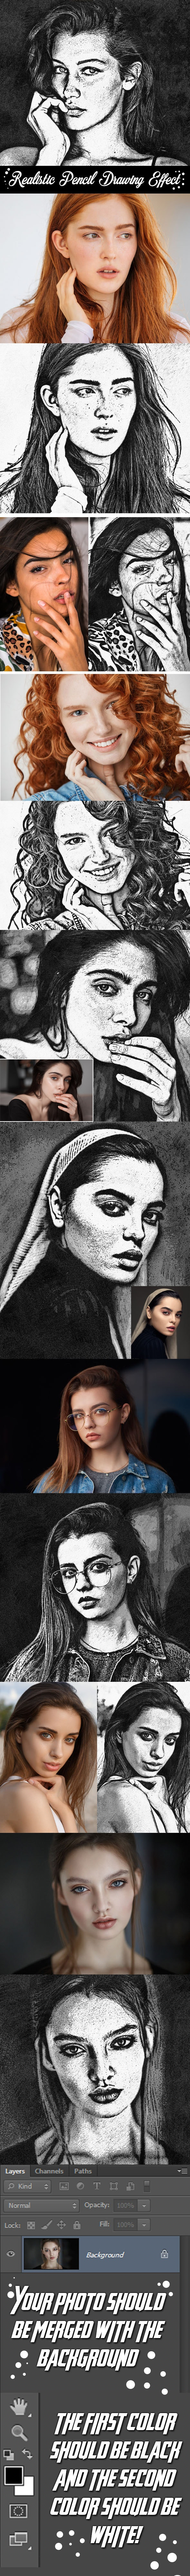 Realistic Pencil Drawing Effect - Photo Effects Actions